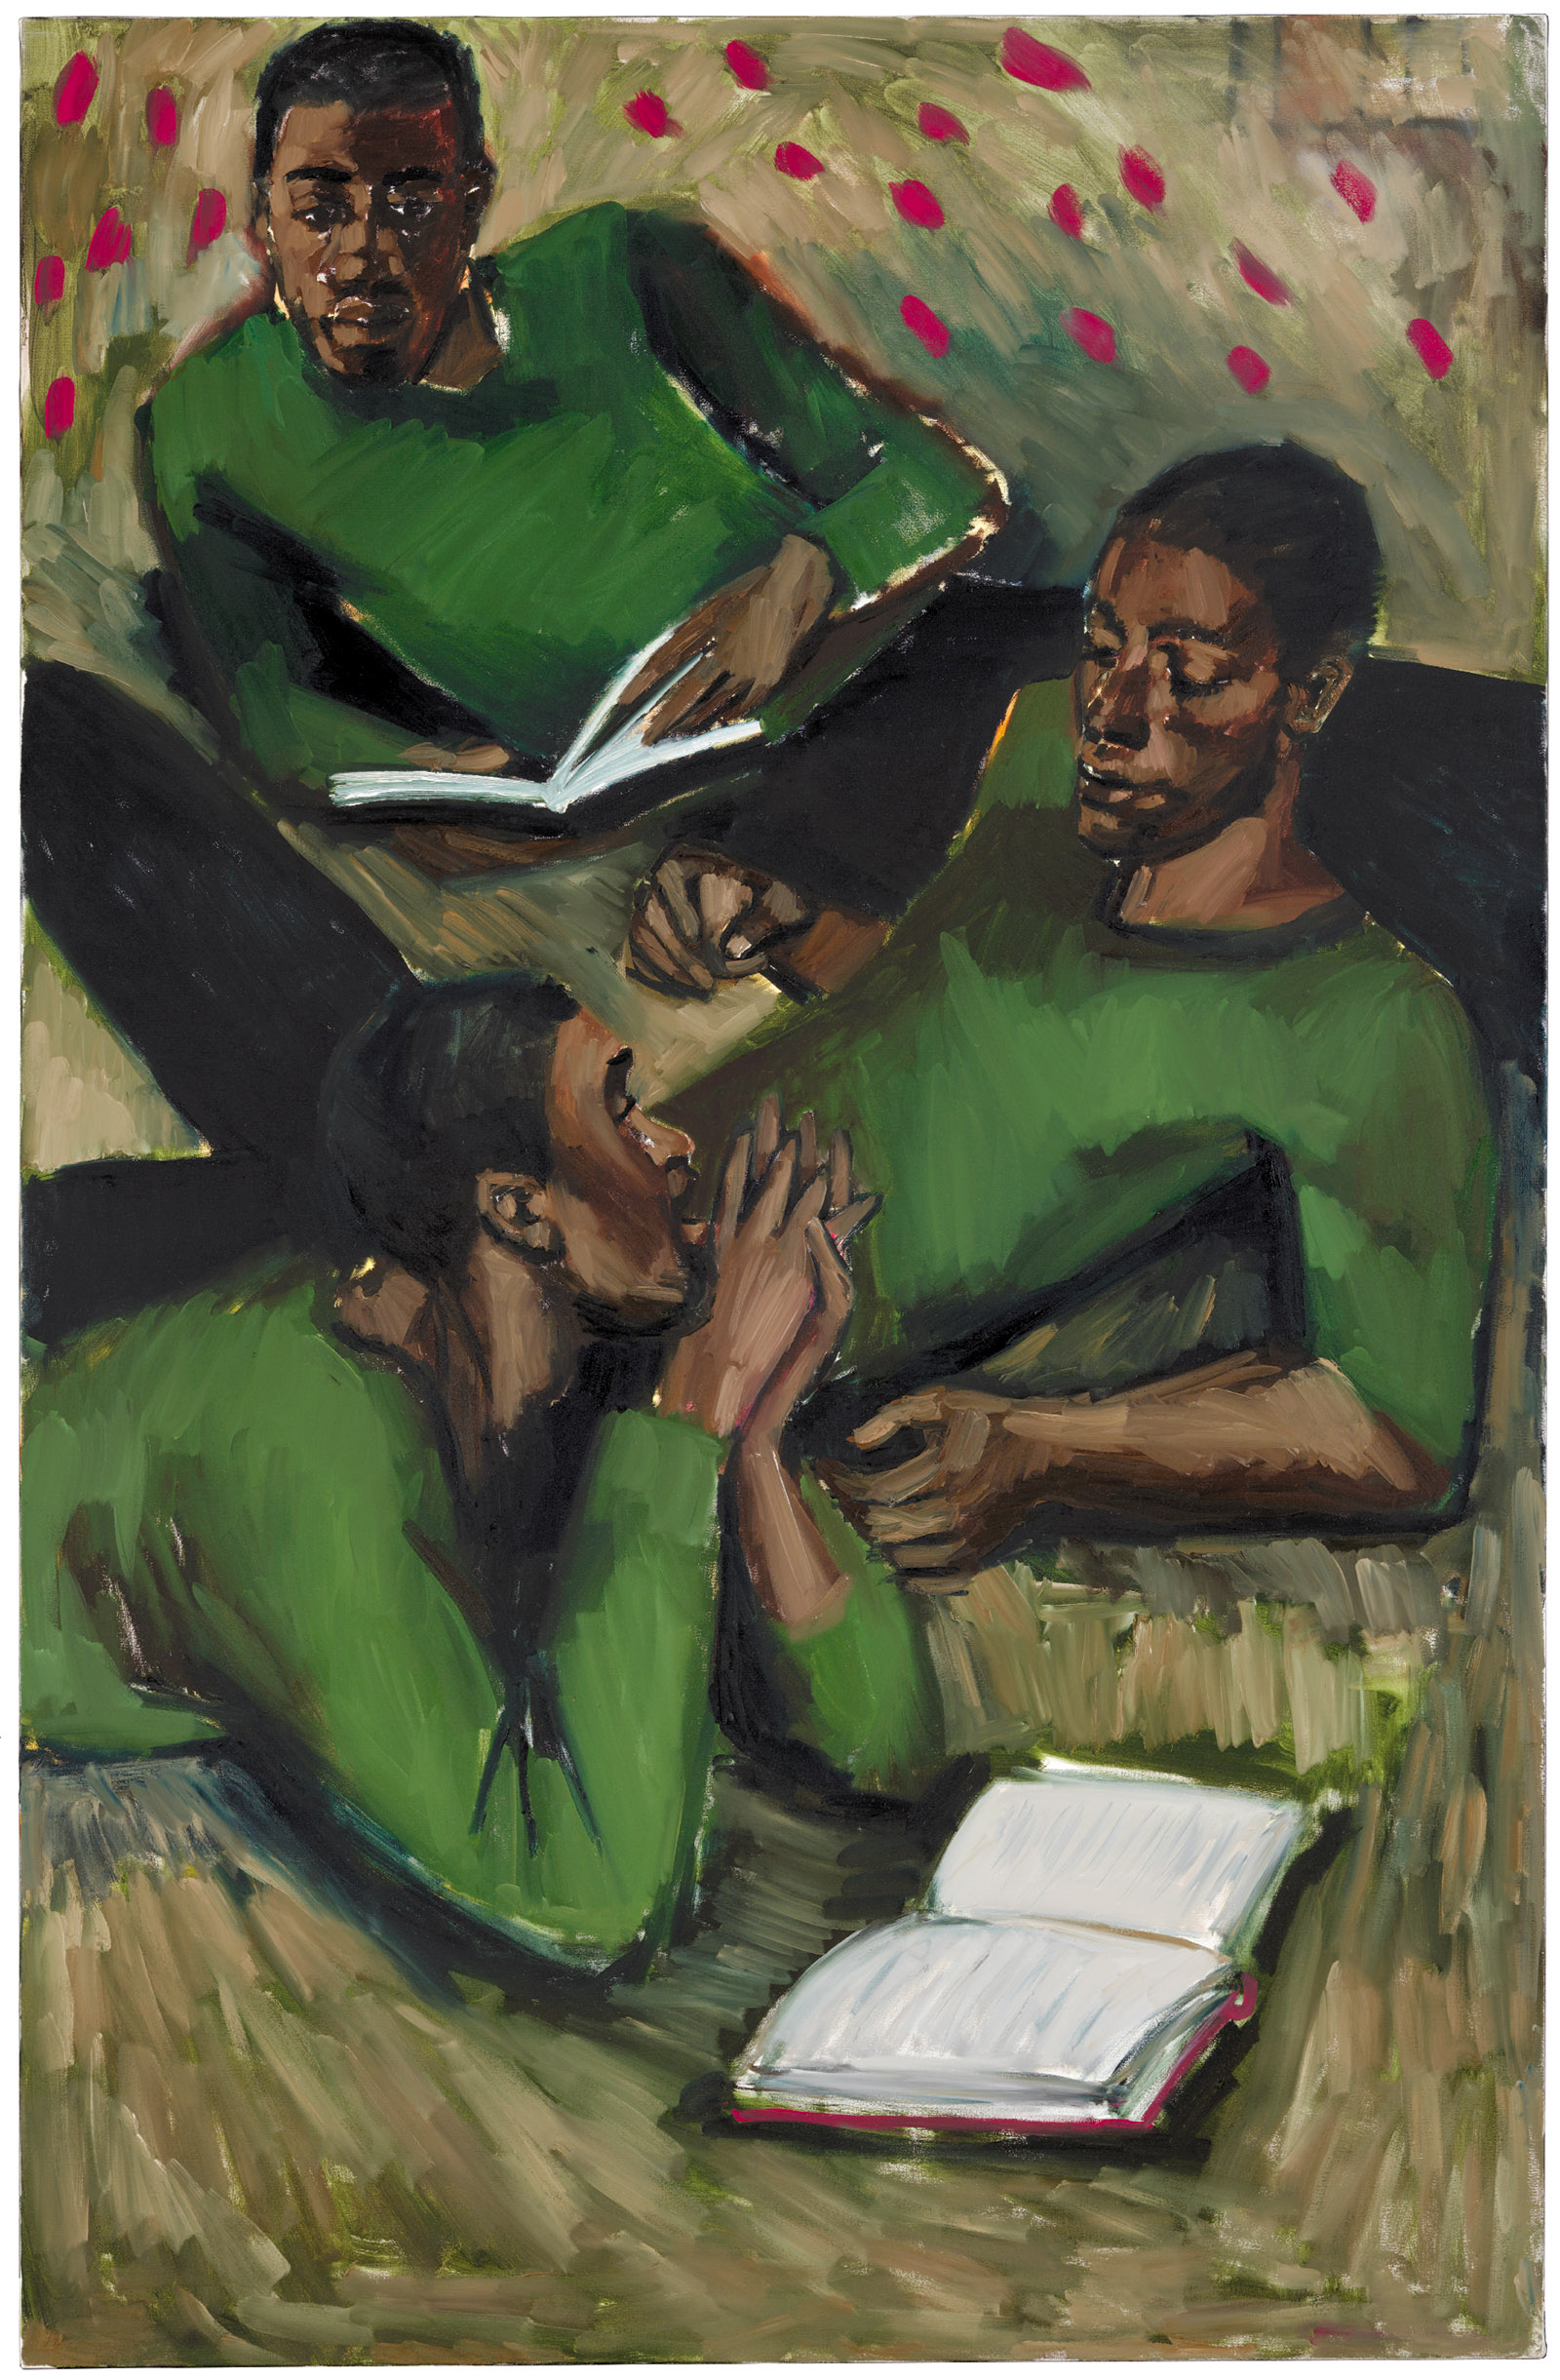 Lynette Yiadom-Boakye: To Reason with Heathen at Harvest, 2017. An exhibition of Yiadom-Boakye's work, curated by Hilton Als, is on view at the Yale Center for British Art, New Haven, September 12–December 15, 2019.